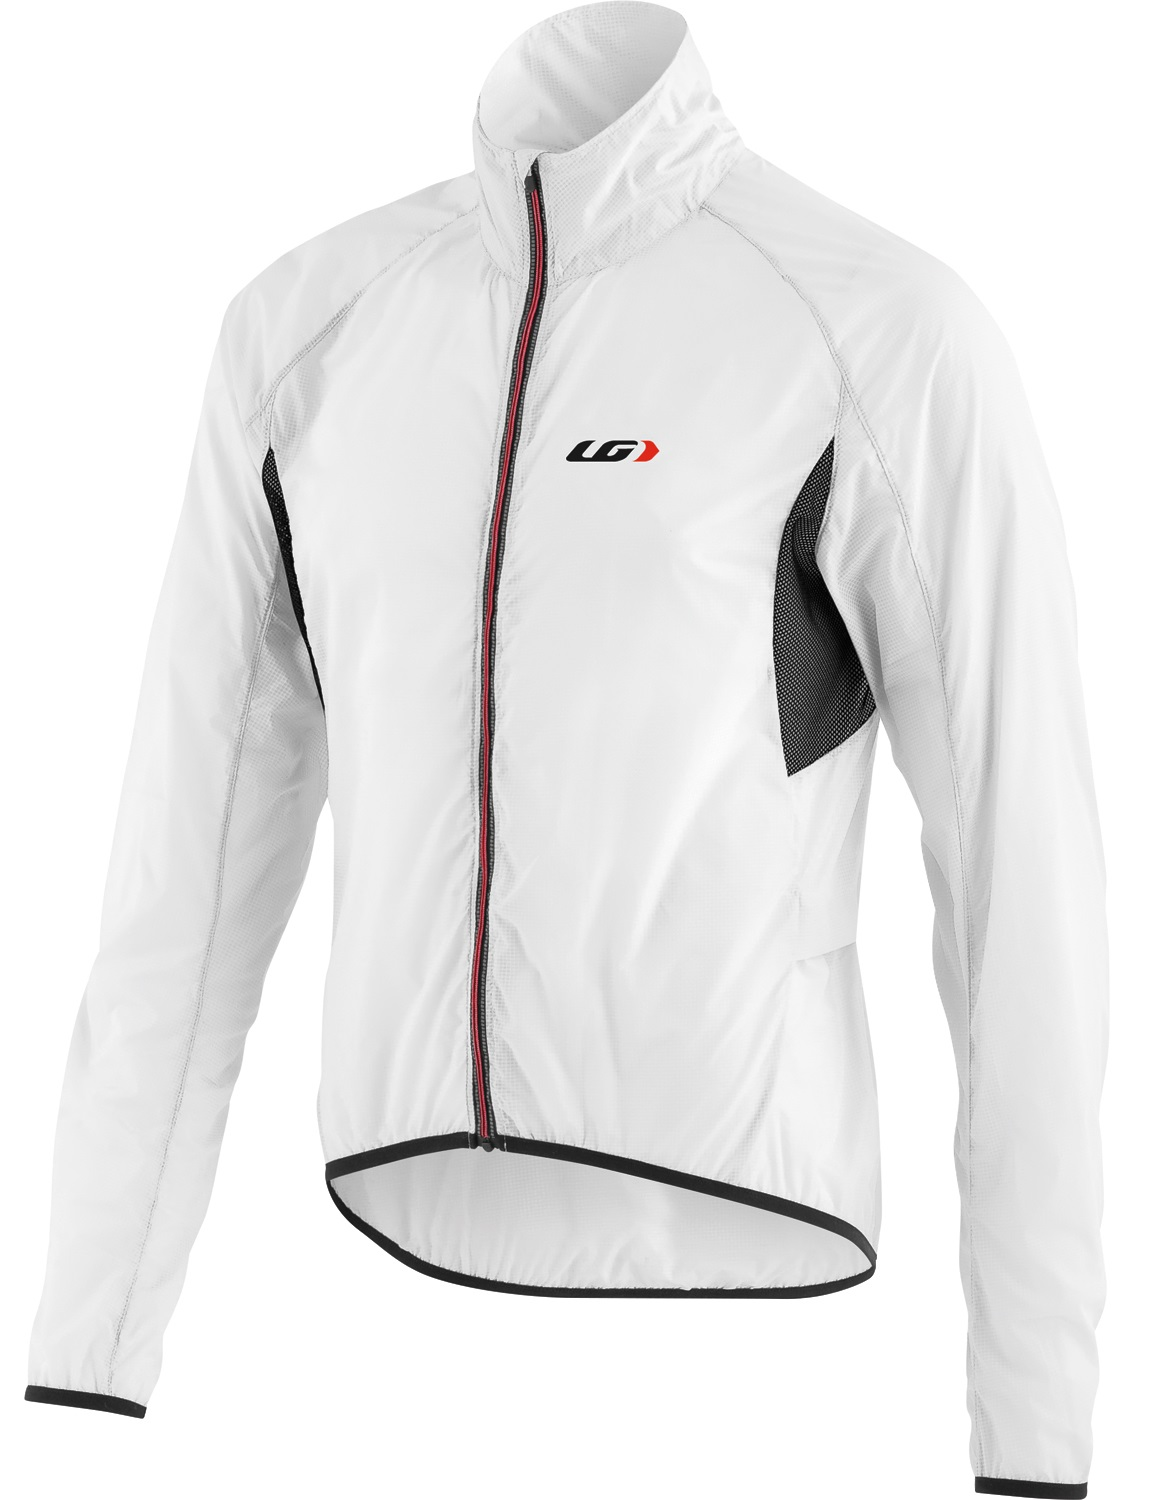 louis garneau men 39 s x lite cycling jacket giromipsroadhelmet. Black Bedroom Furniture Sets. Home Design Ideas